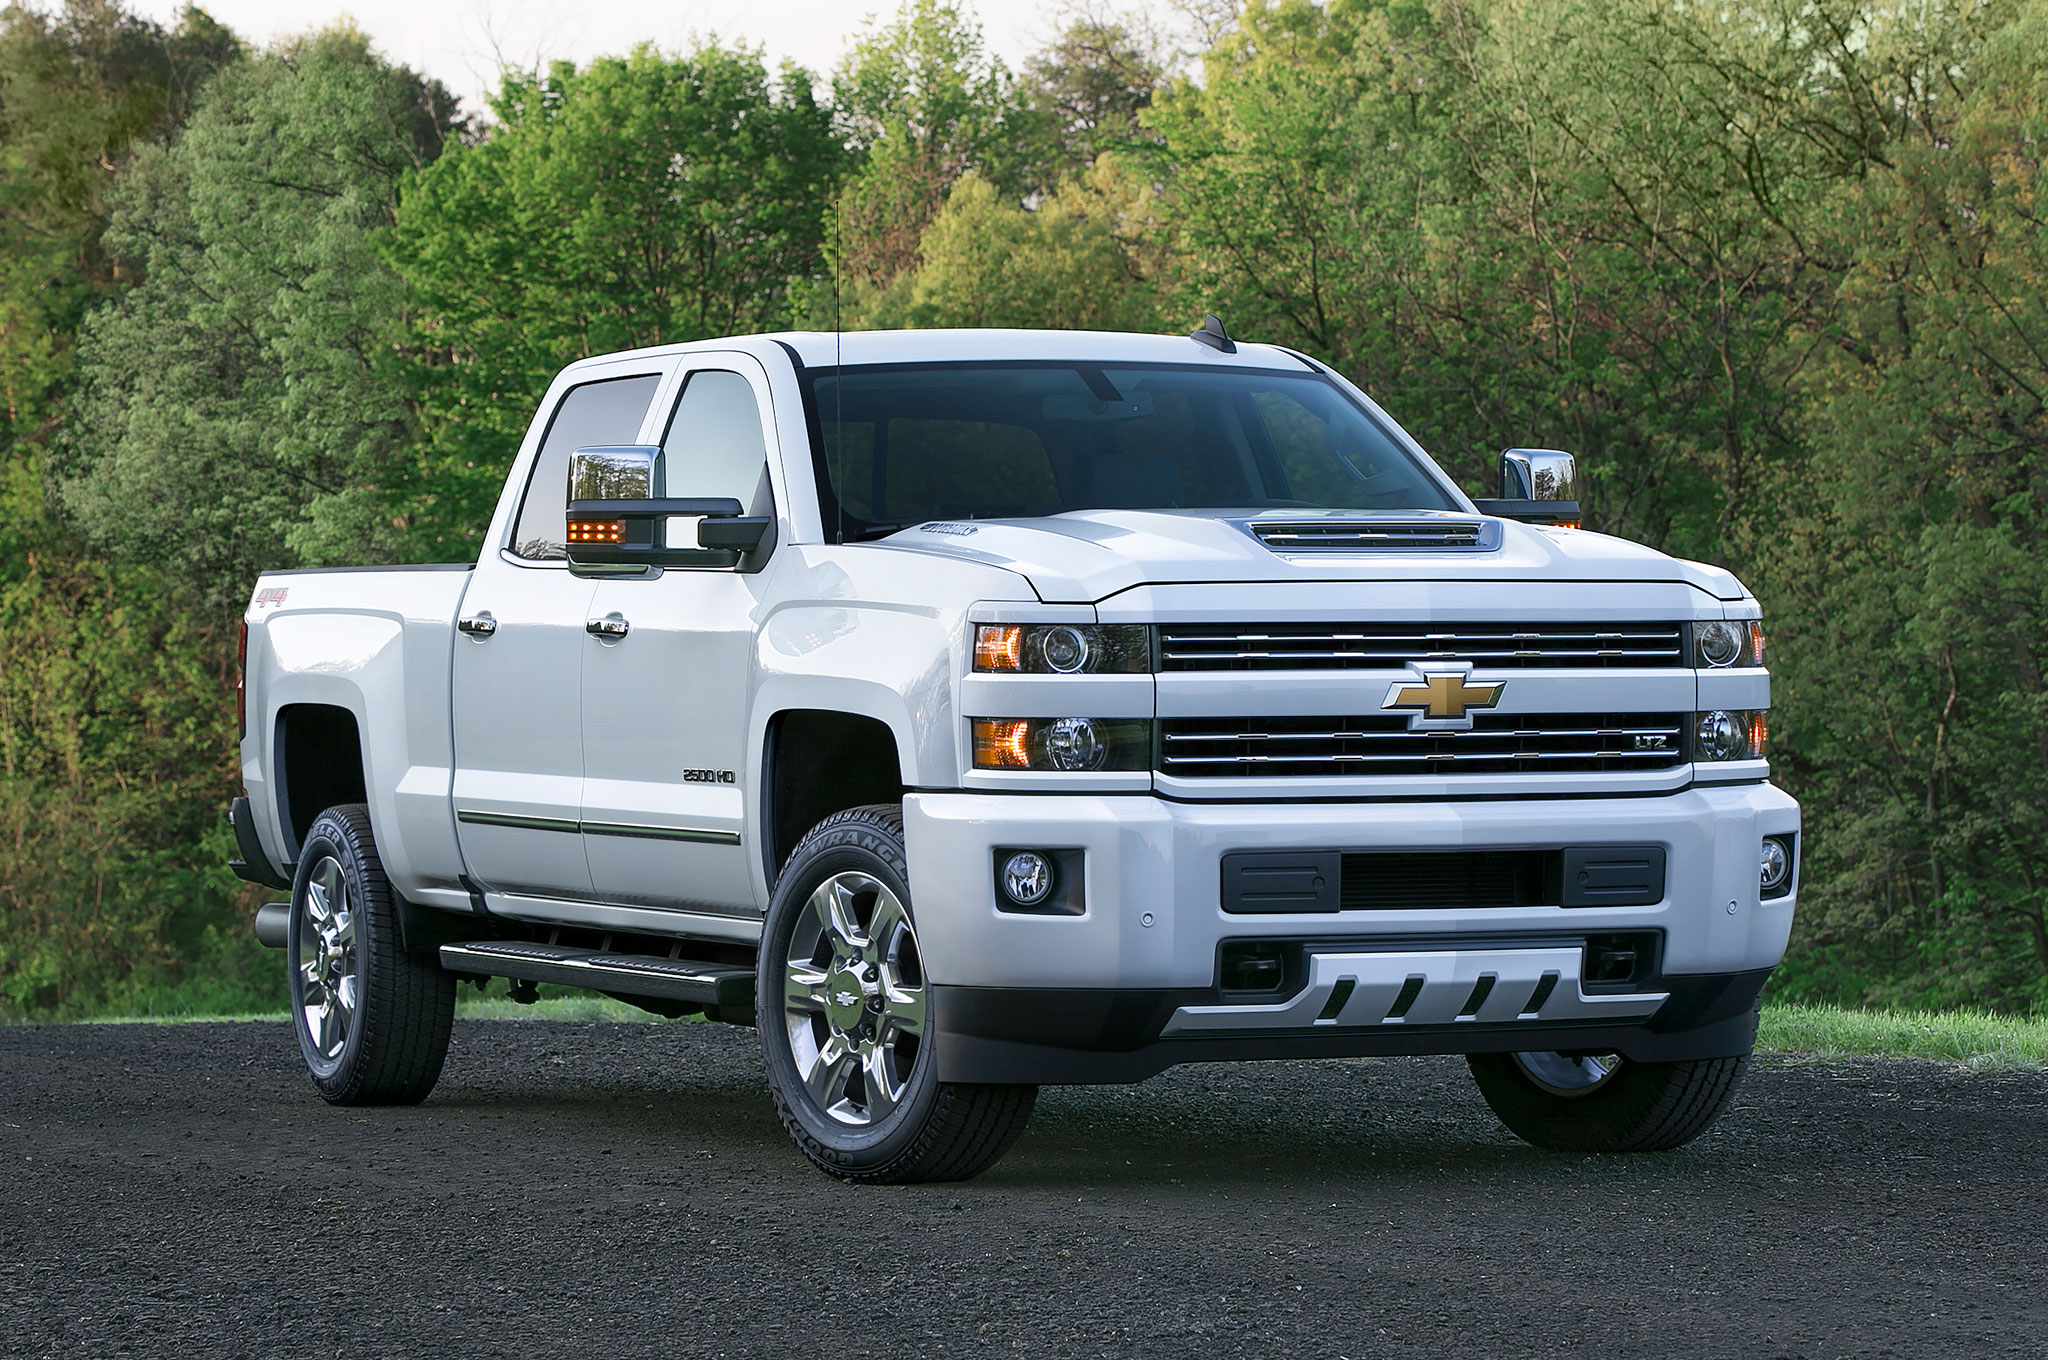 Chevy Truck Alternative Fuel Options for 2018